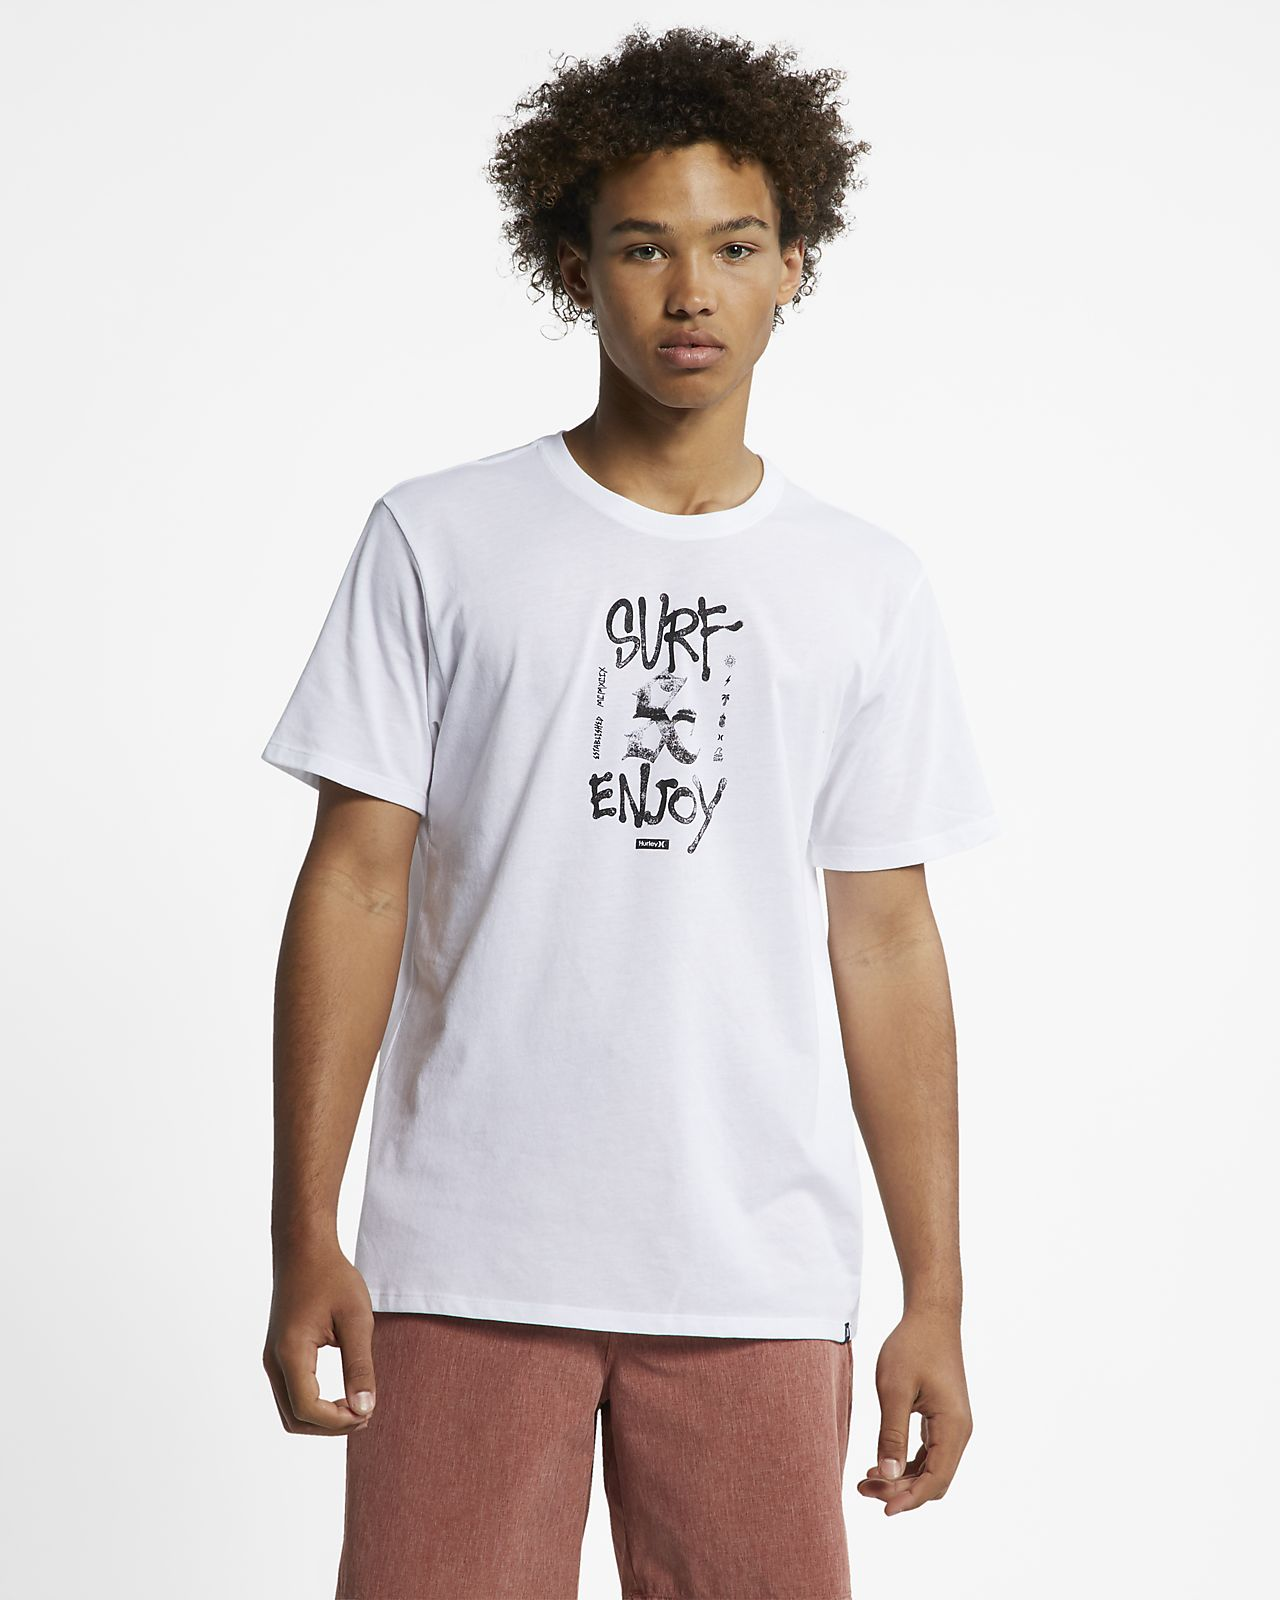 Hurley Dri-FIT Surf And Enjoy Men's T-Shirt